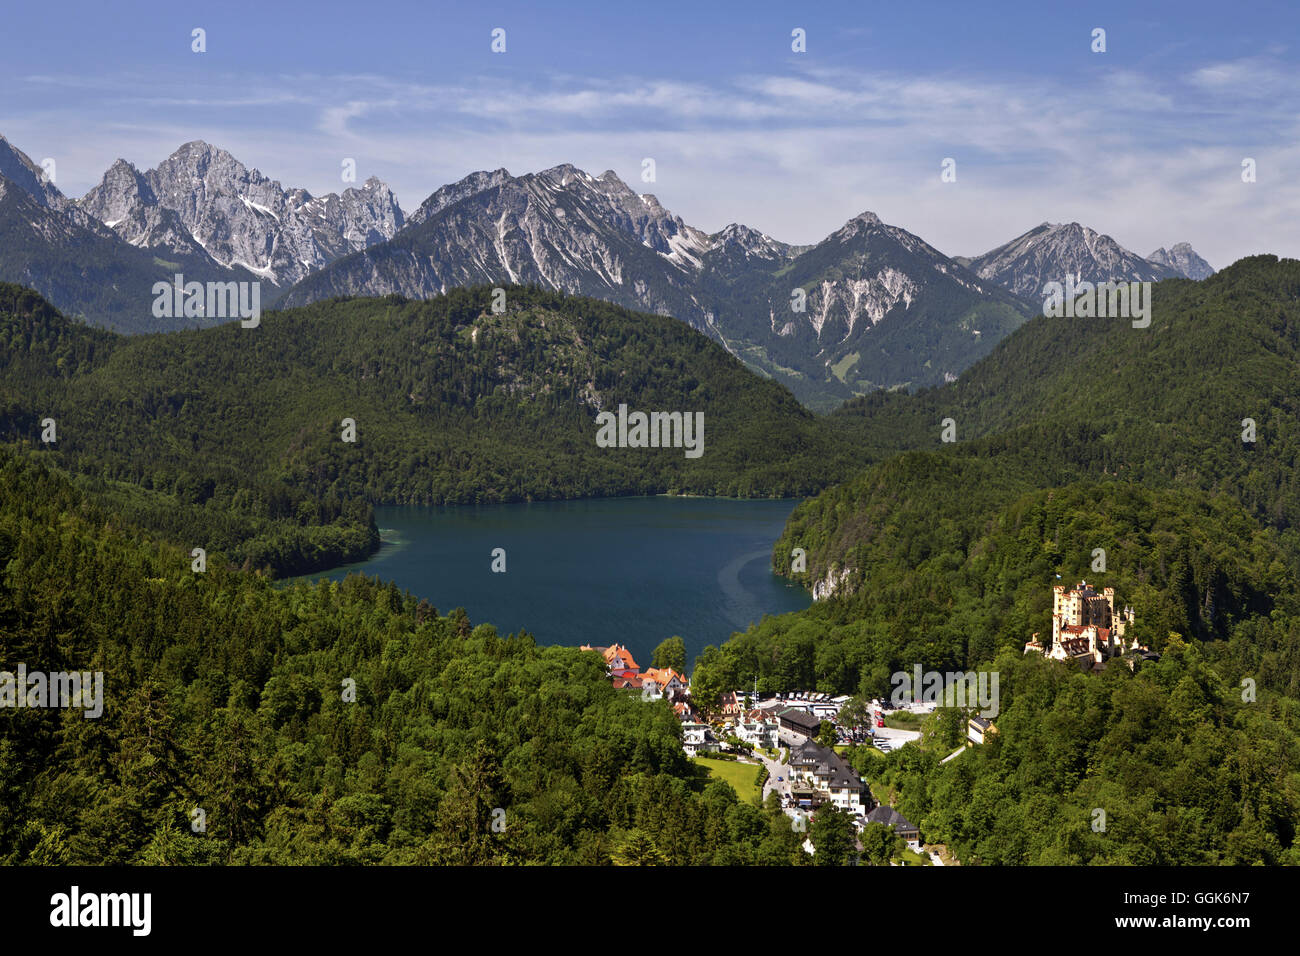 lake Alpsee near Schwangau, Hohenschwangau, Bavaria, Germany - Stock Image